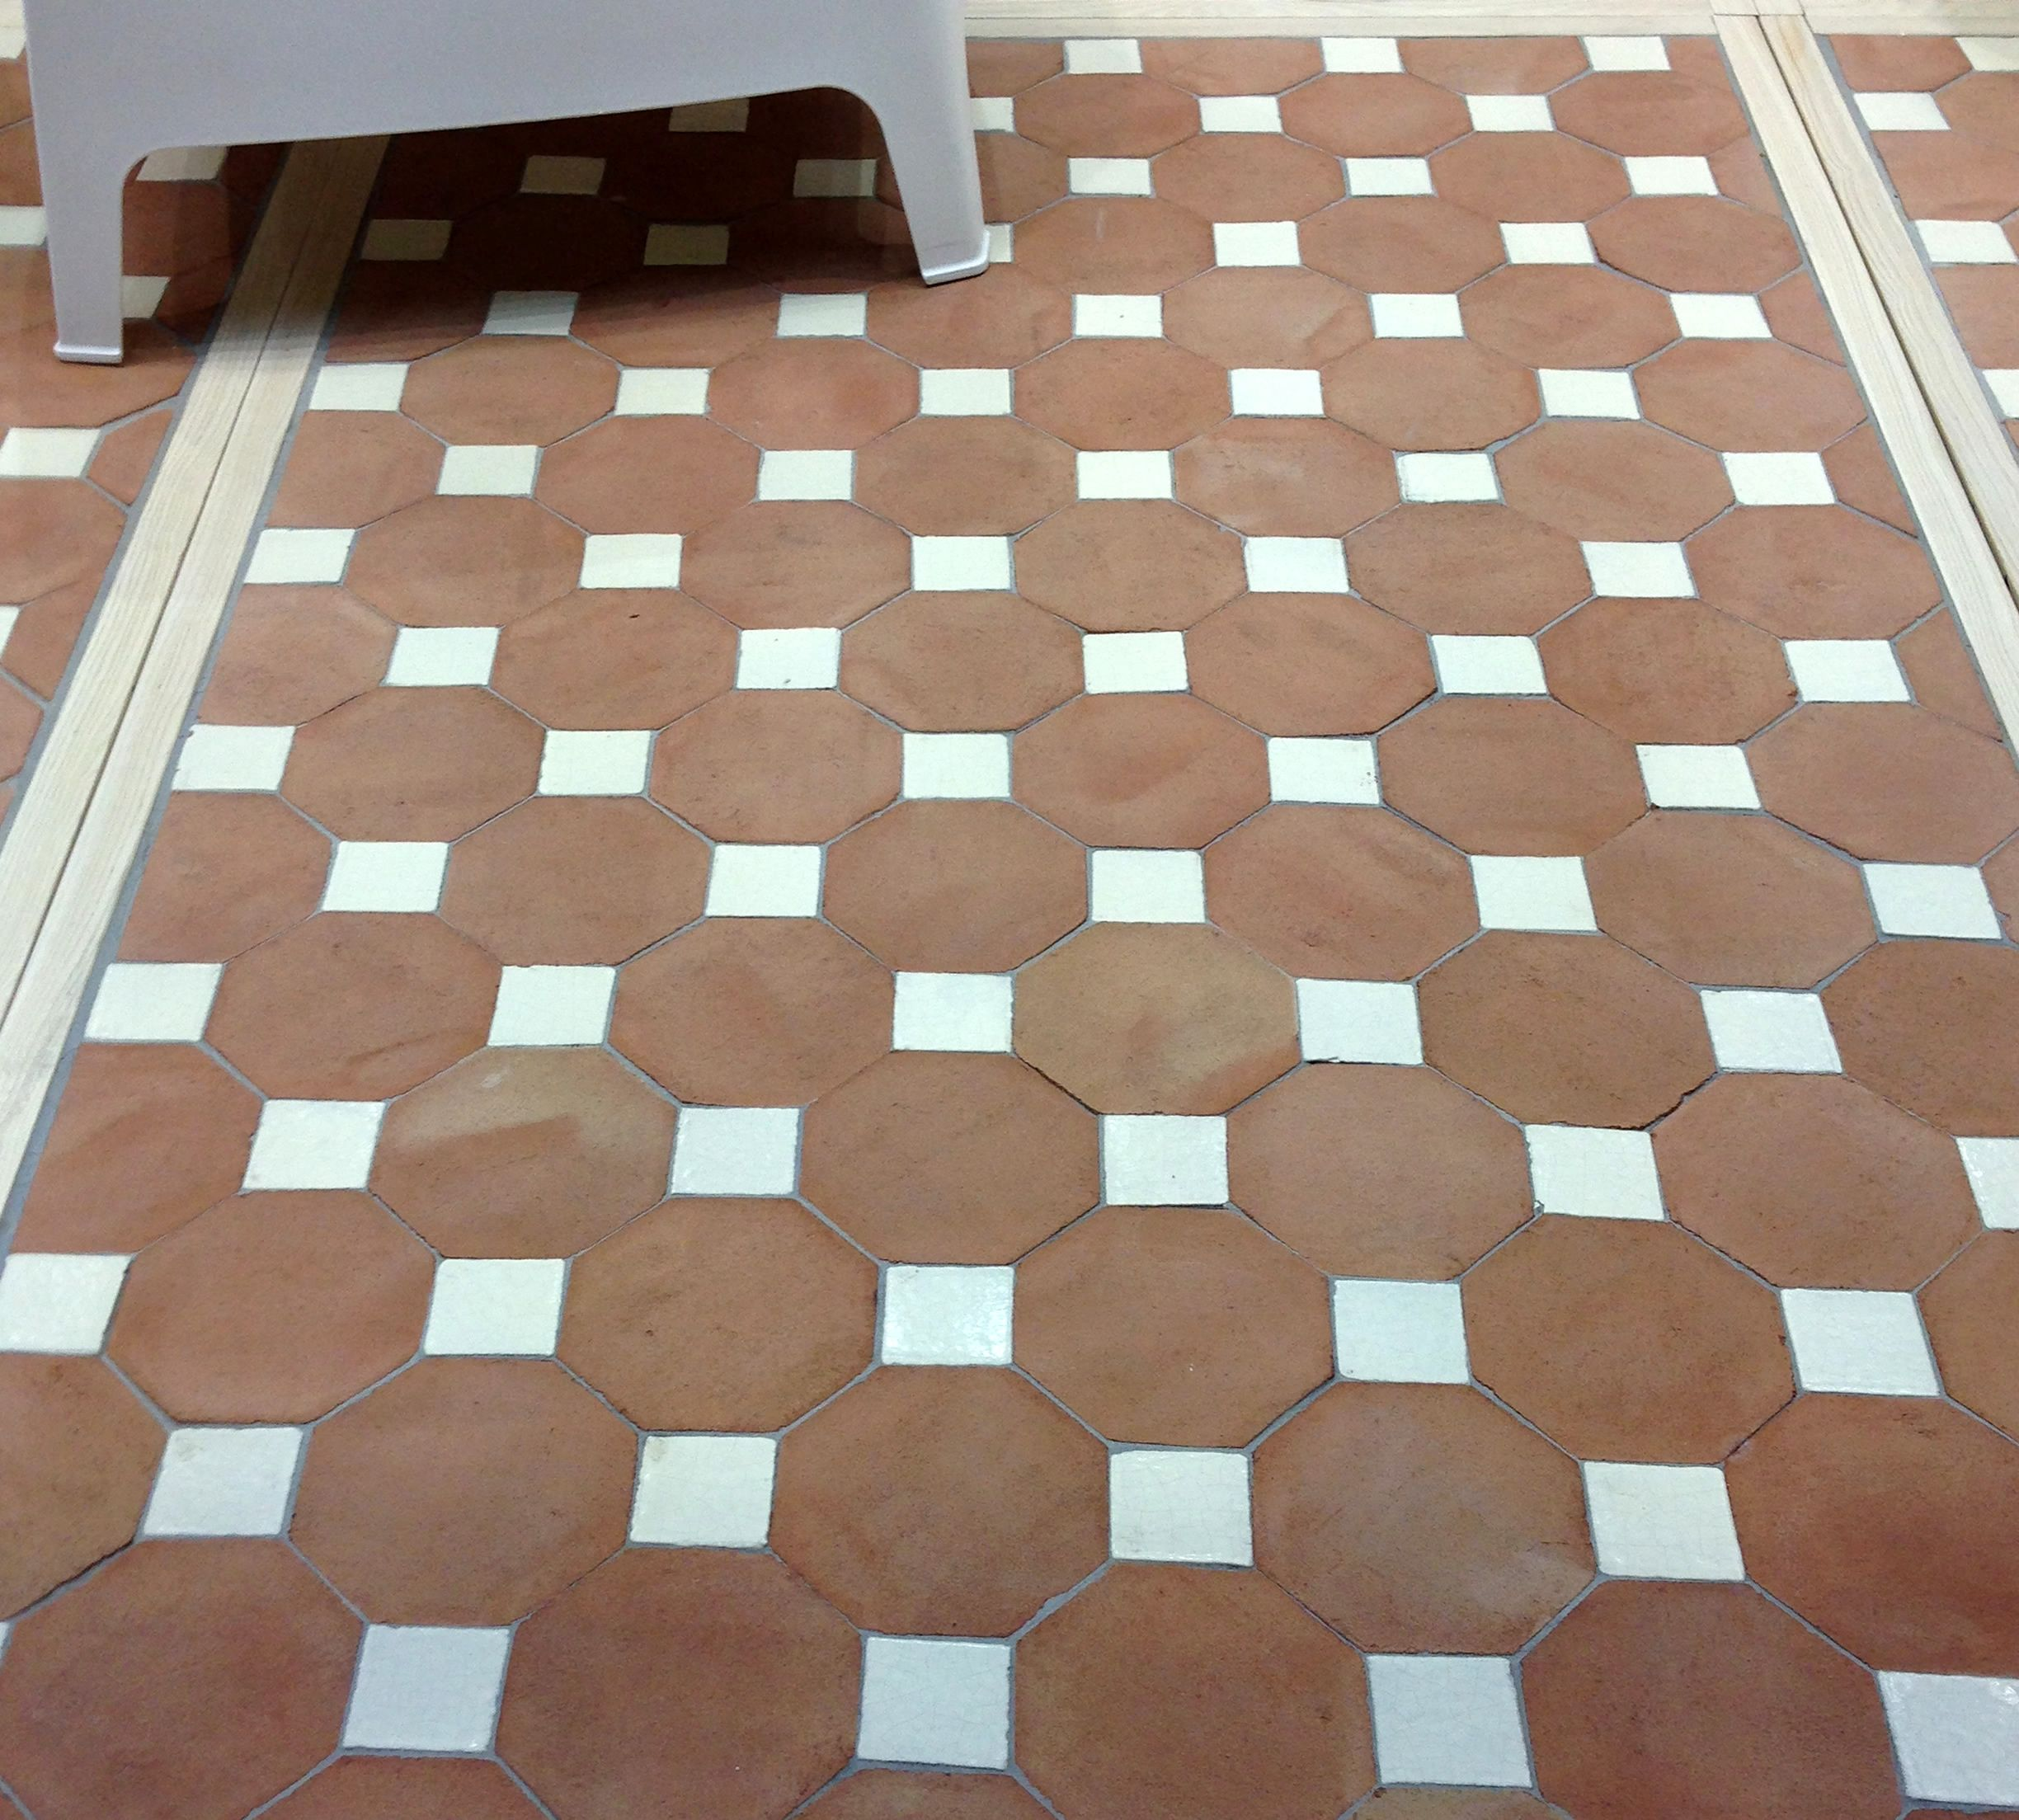 Pin By Tierra Y Fuego Ceramic Tiles On Terra Cotta And Ceramic Floor Tile With Images Mexican Tile Floor Tiles Flooring